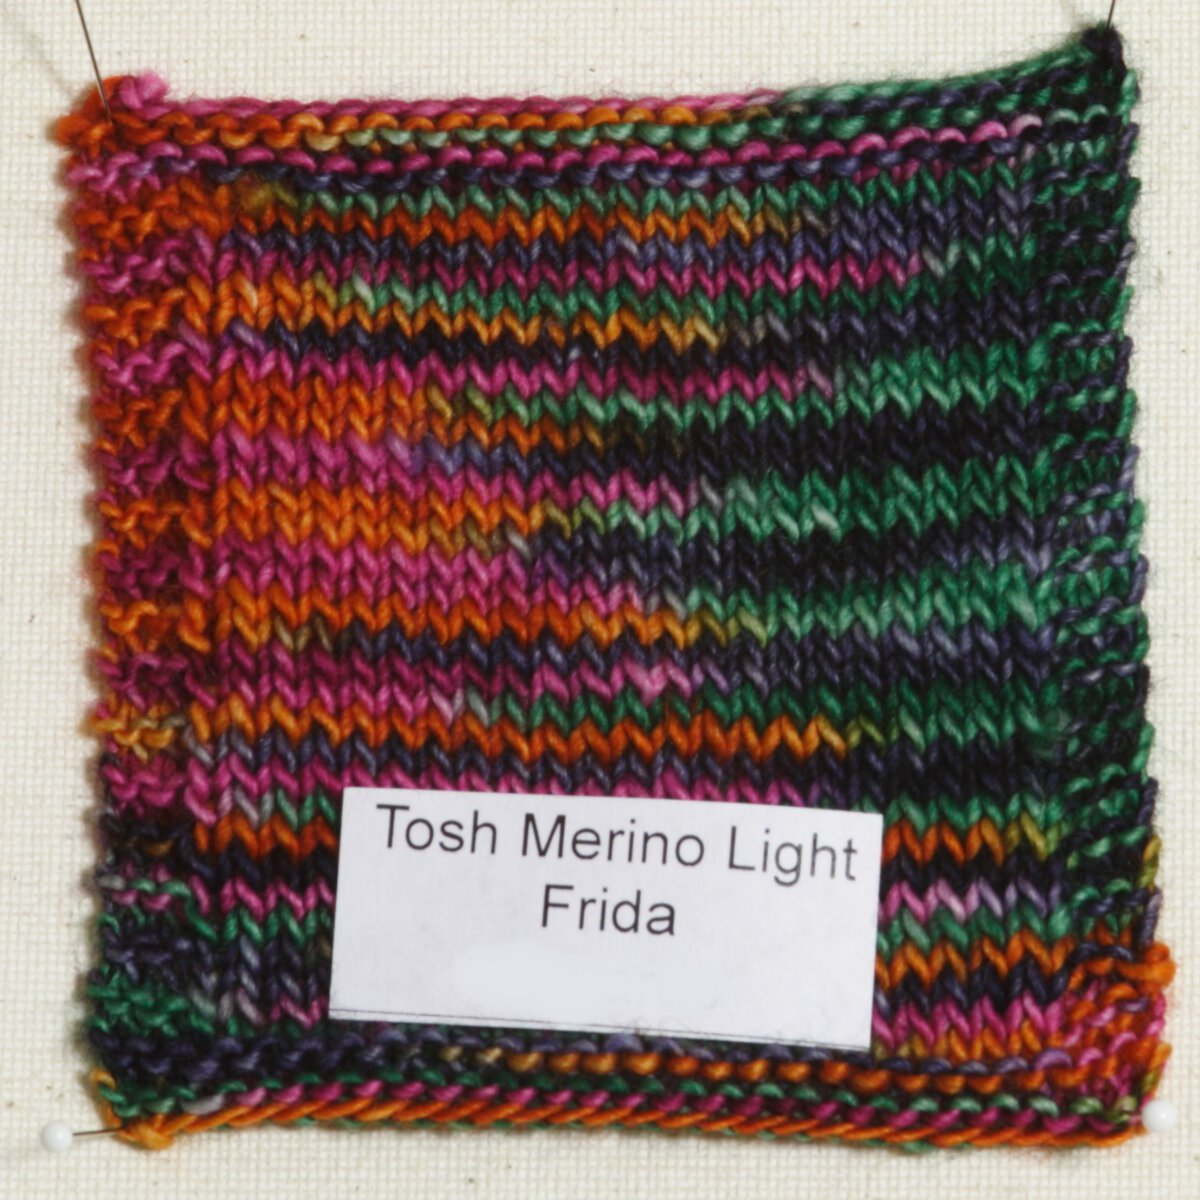 madelinetosh tosh merino light samples yarn frida at jimmy beans. Black Bedroom Furniture Sets. Home Design Ideas